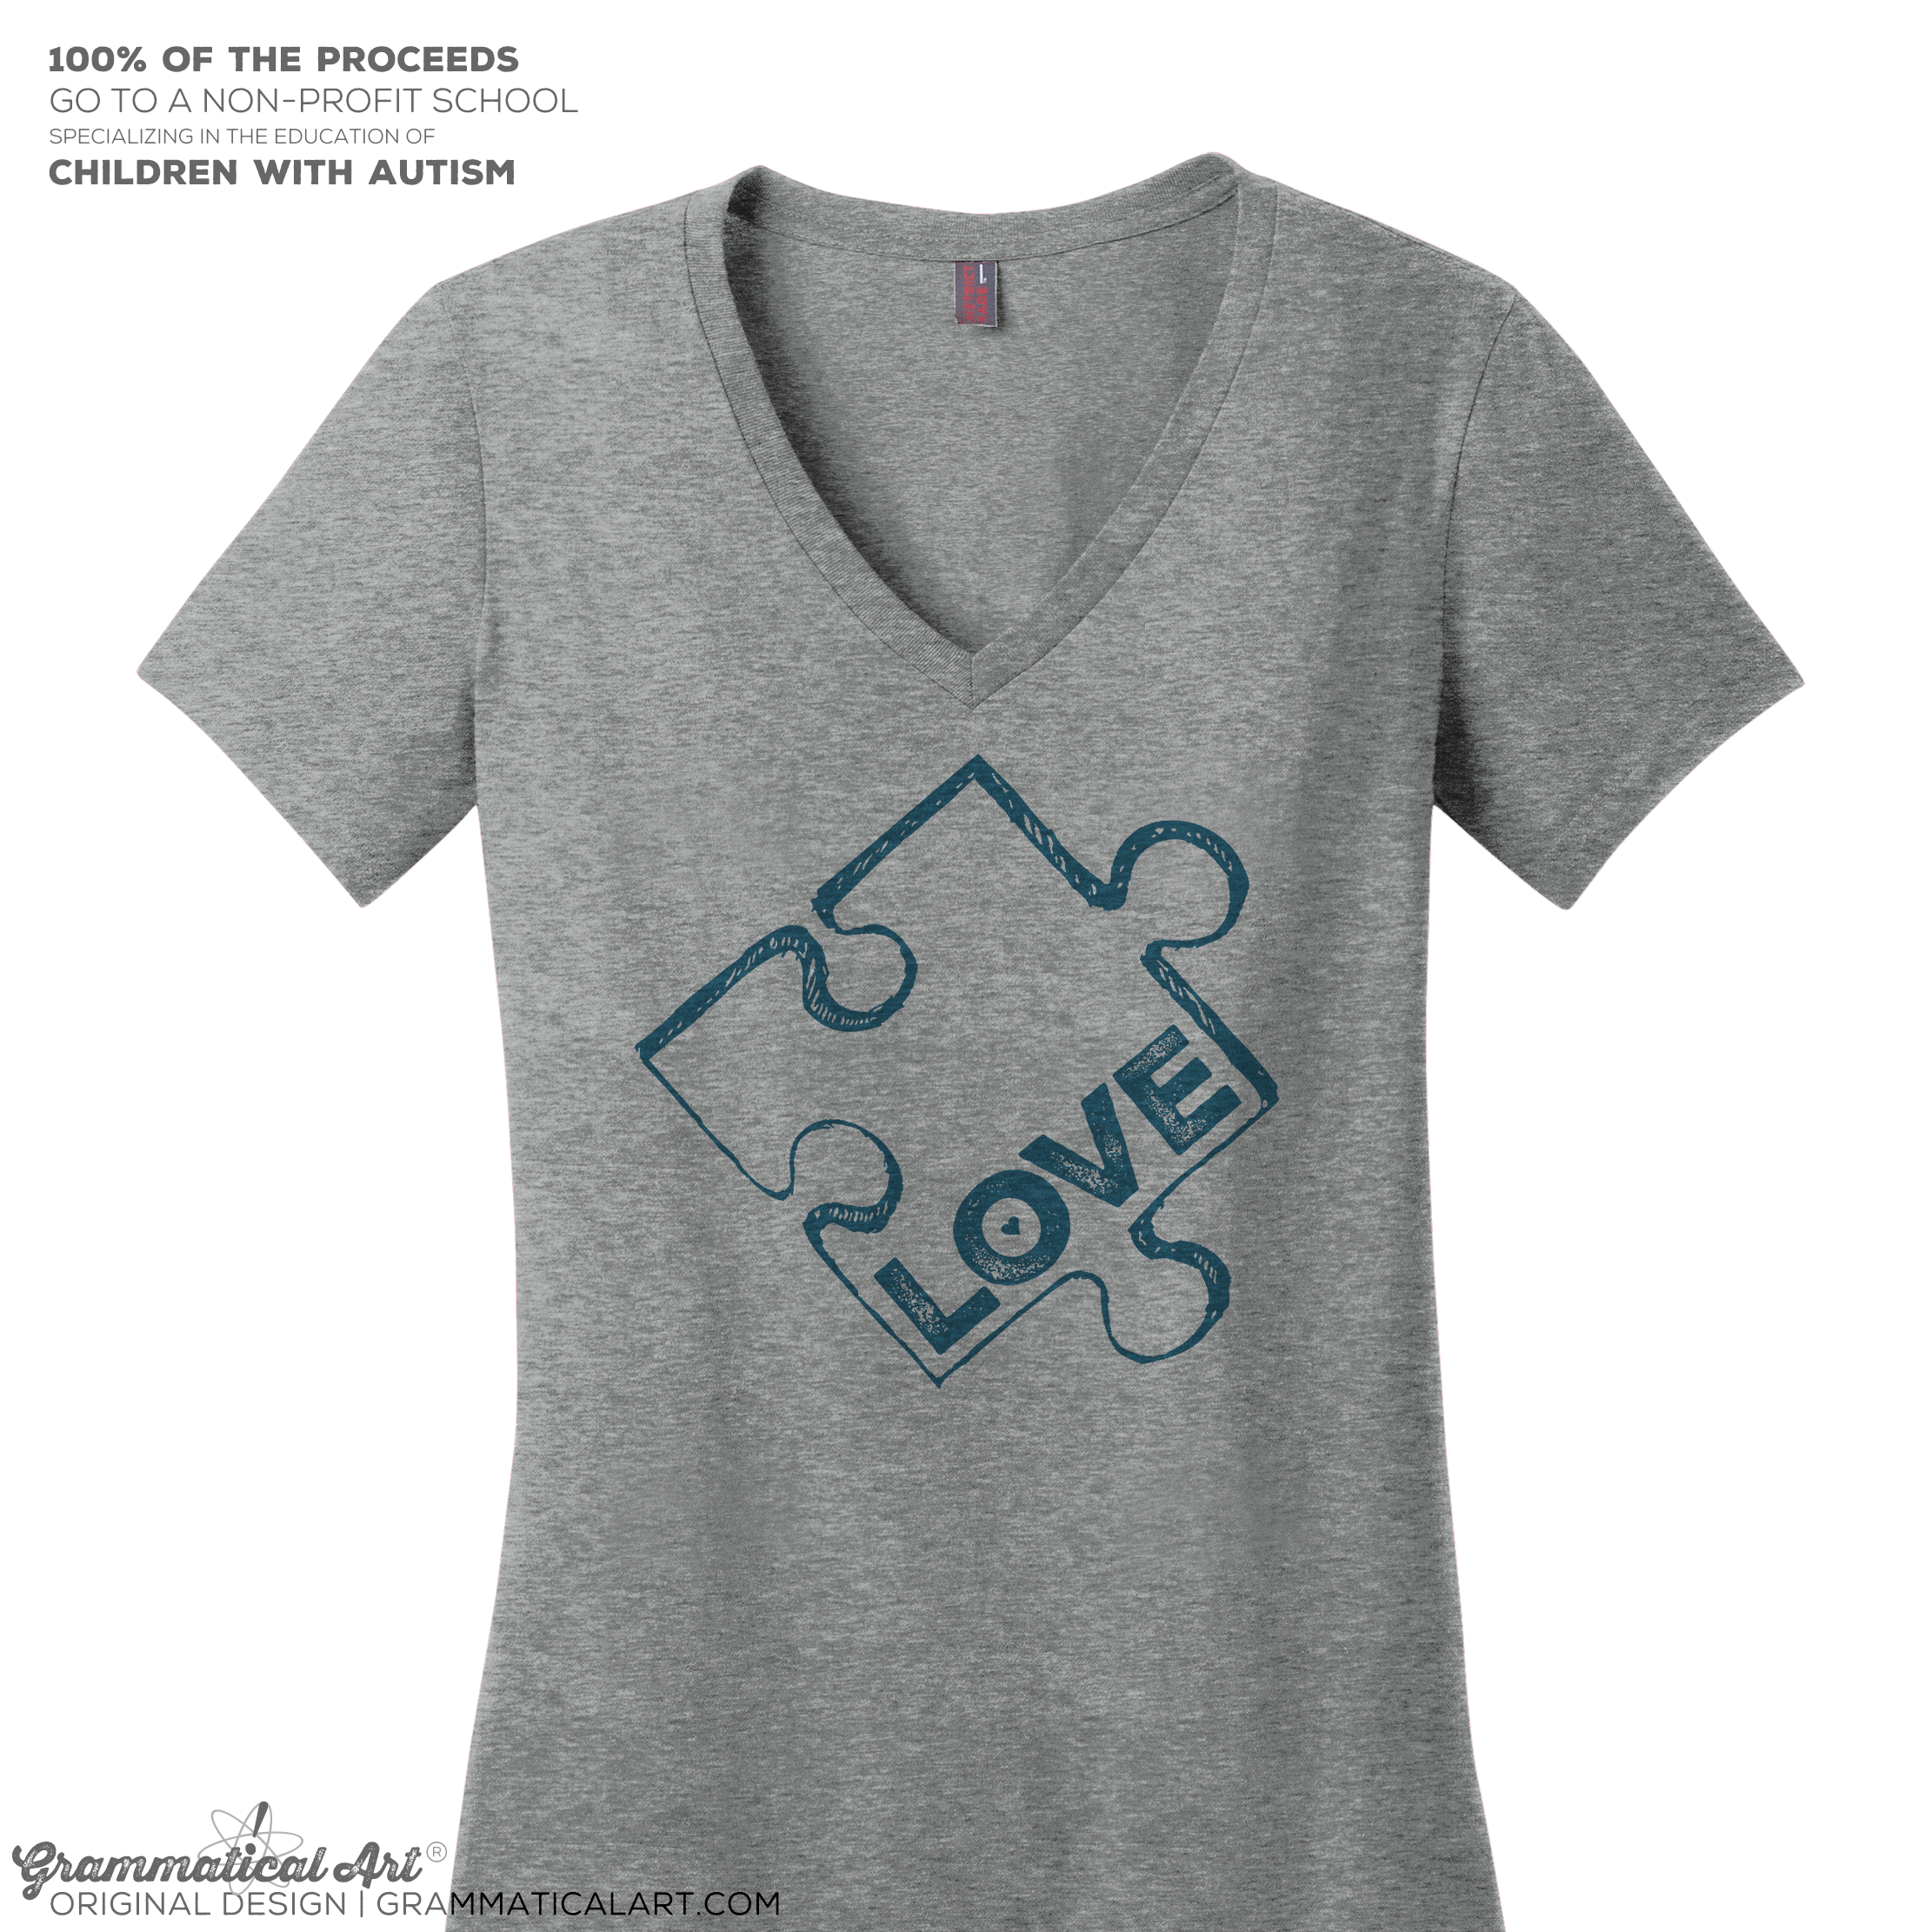 8a828da4b82 Autism Awareness Tee V-Neck | Grammatical Art